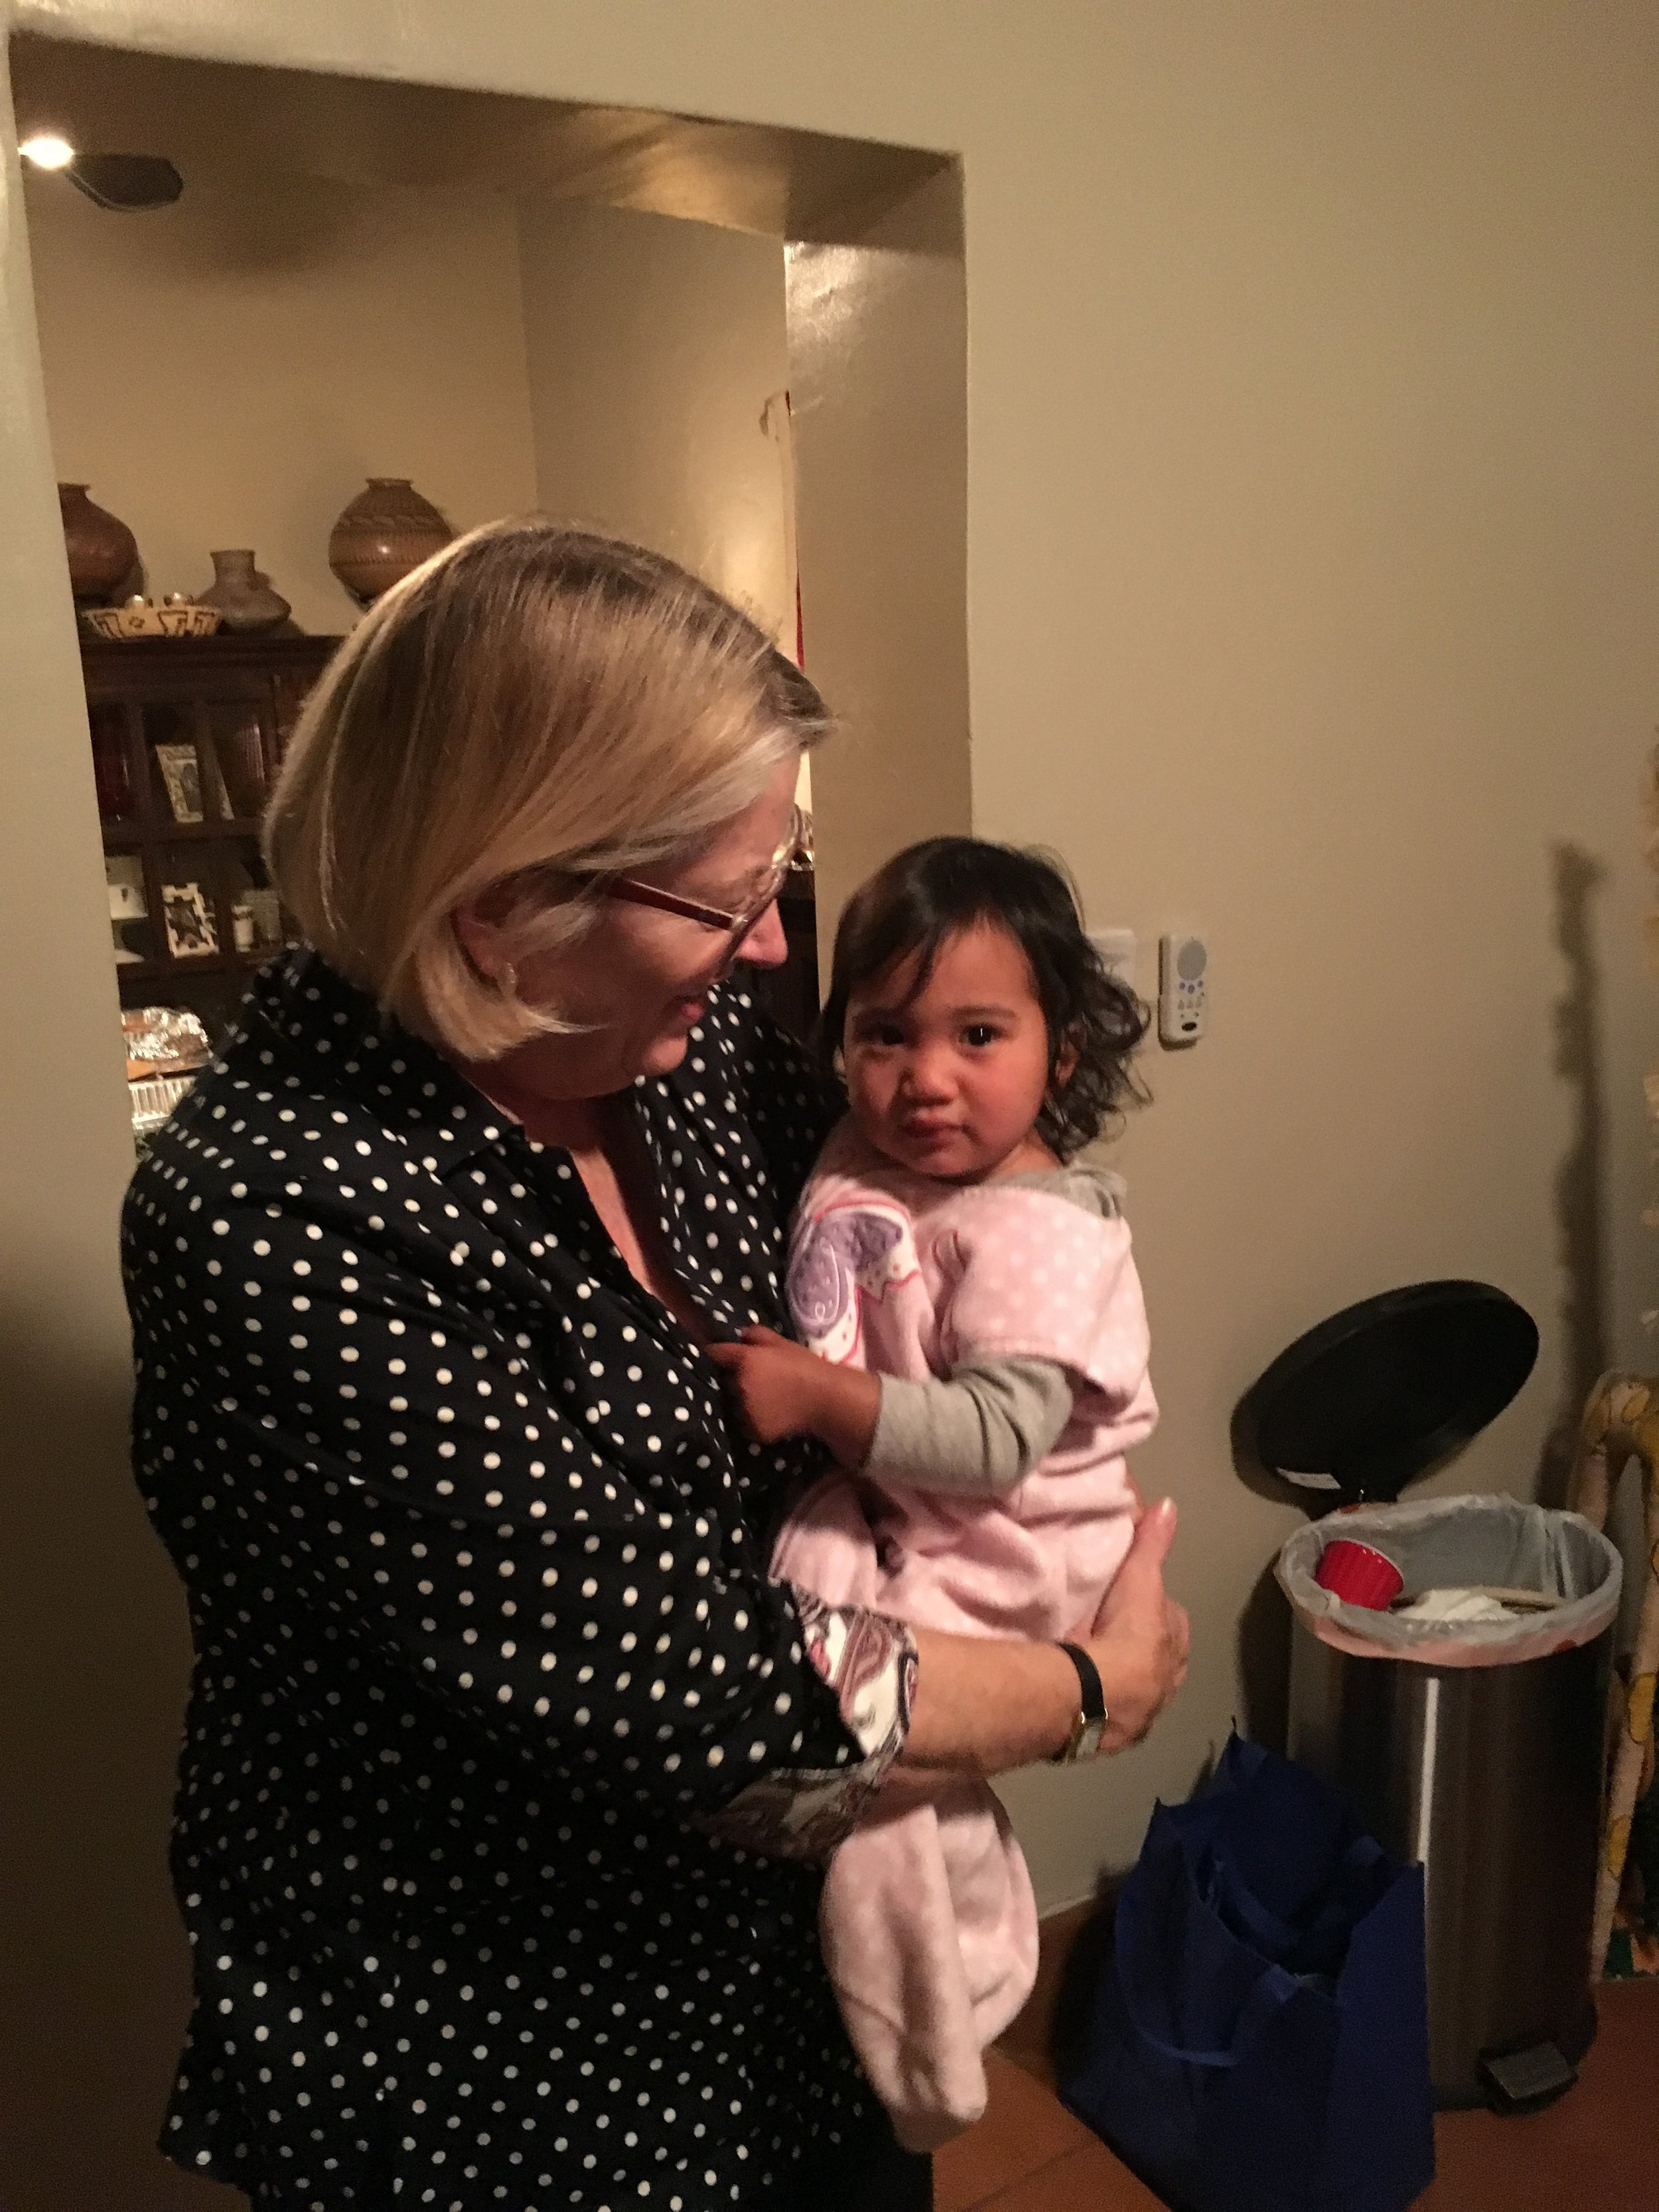 Hillary's wonderful mother, Brooke, and adorable daughter, Madison.